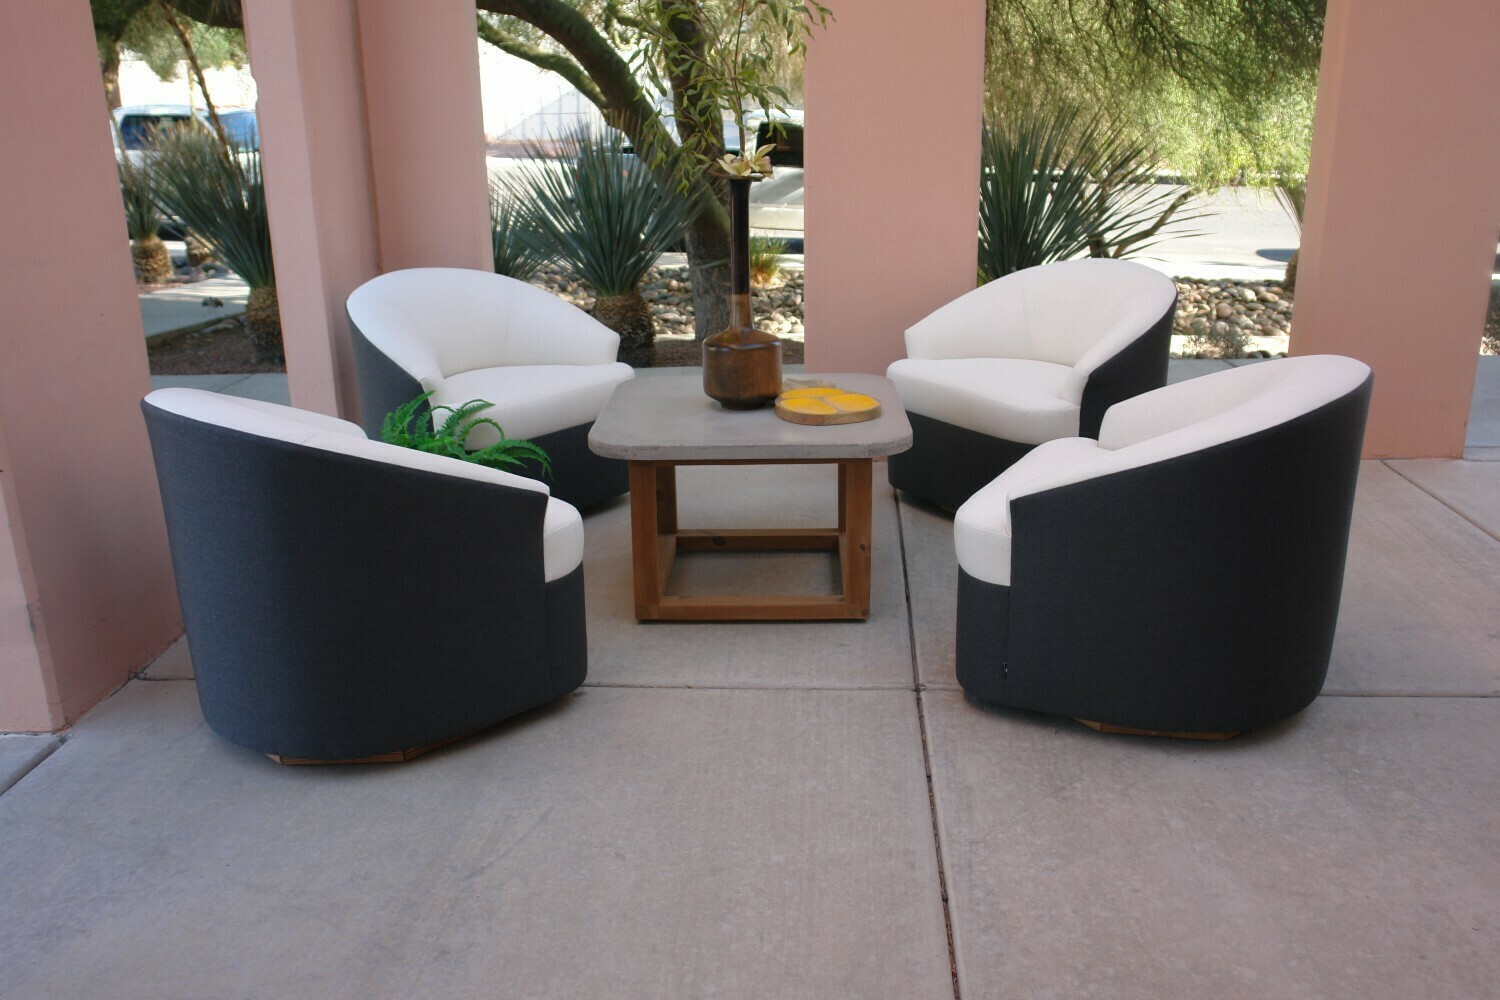 Resort Style 4 piece Chair Set-4 Swivel Chairs